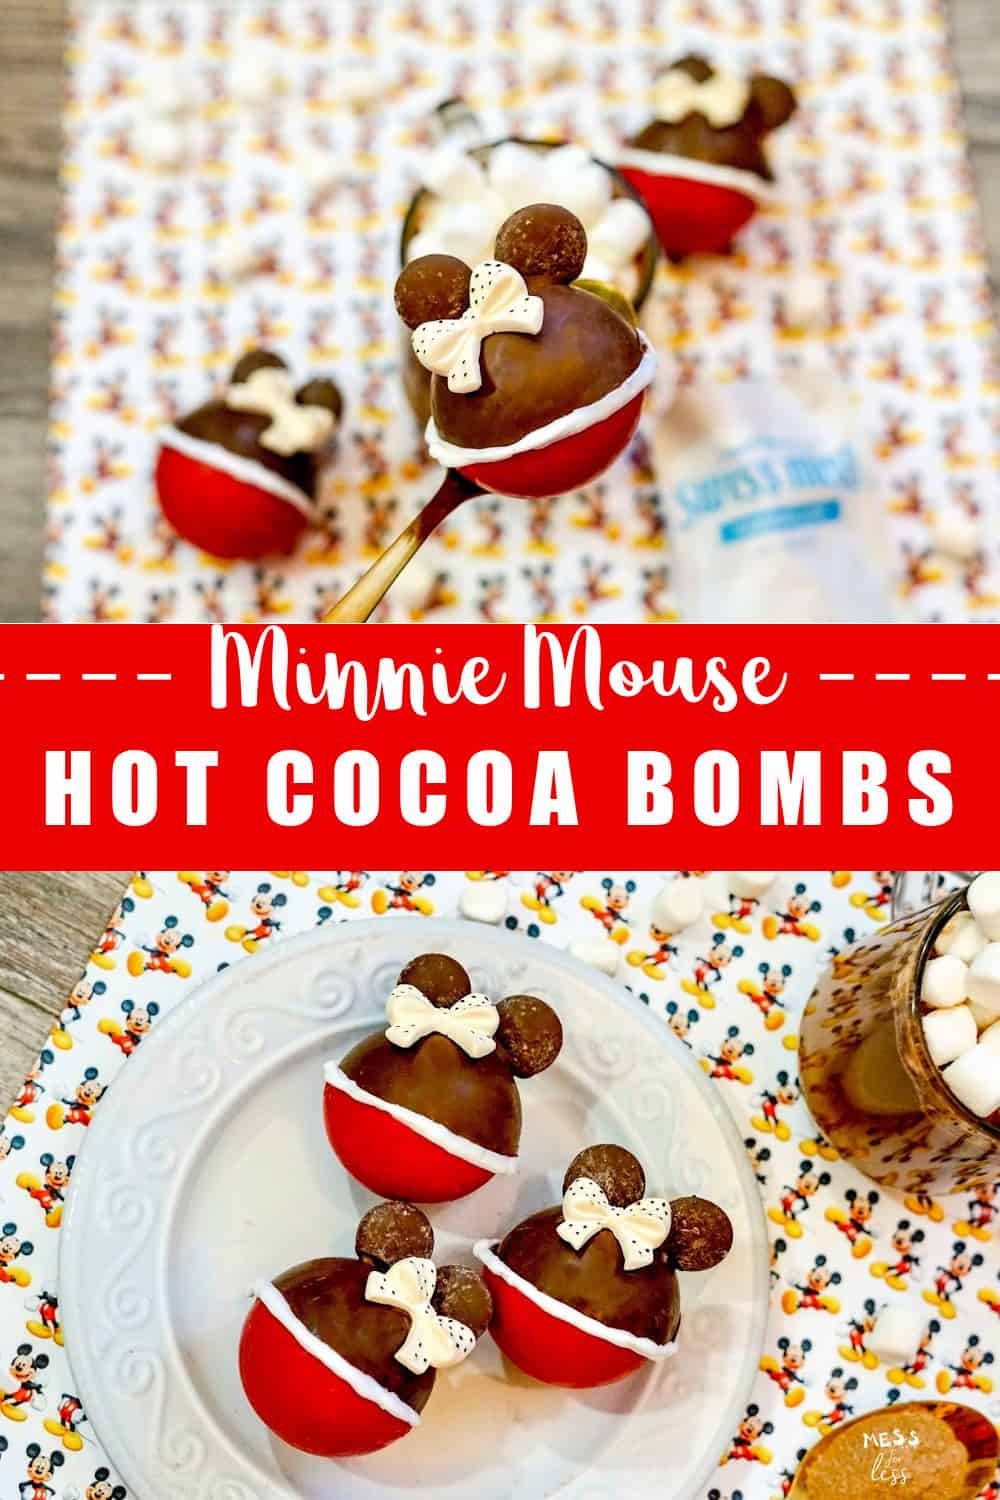 Minnie Mouse Hot Cocoa Bombs